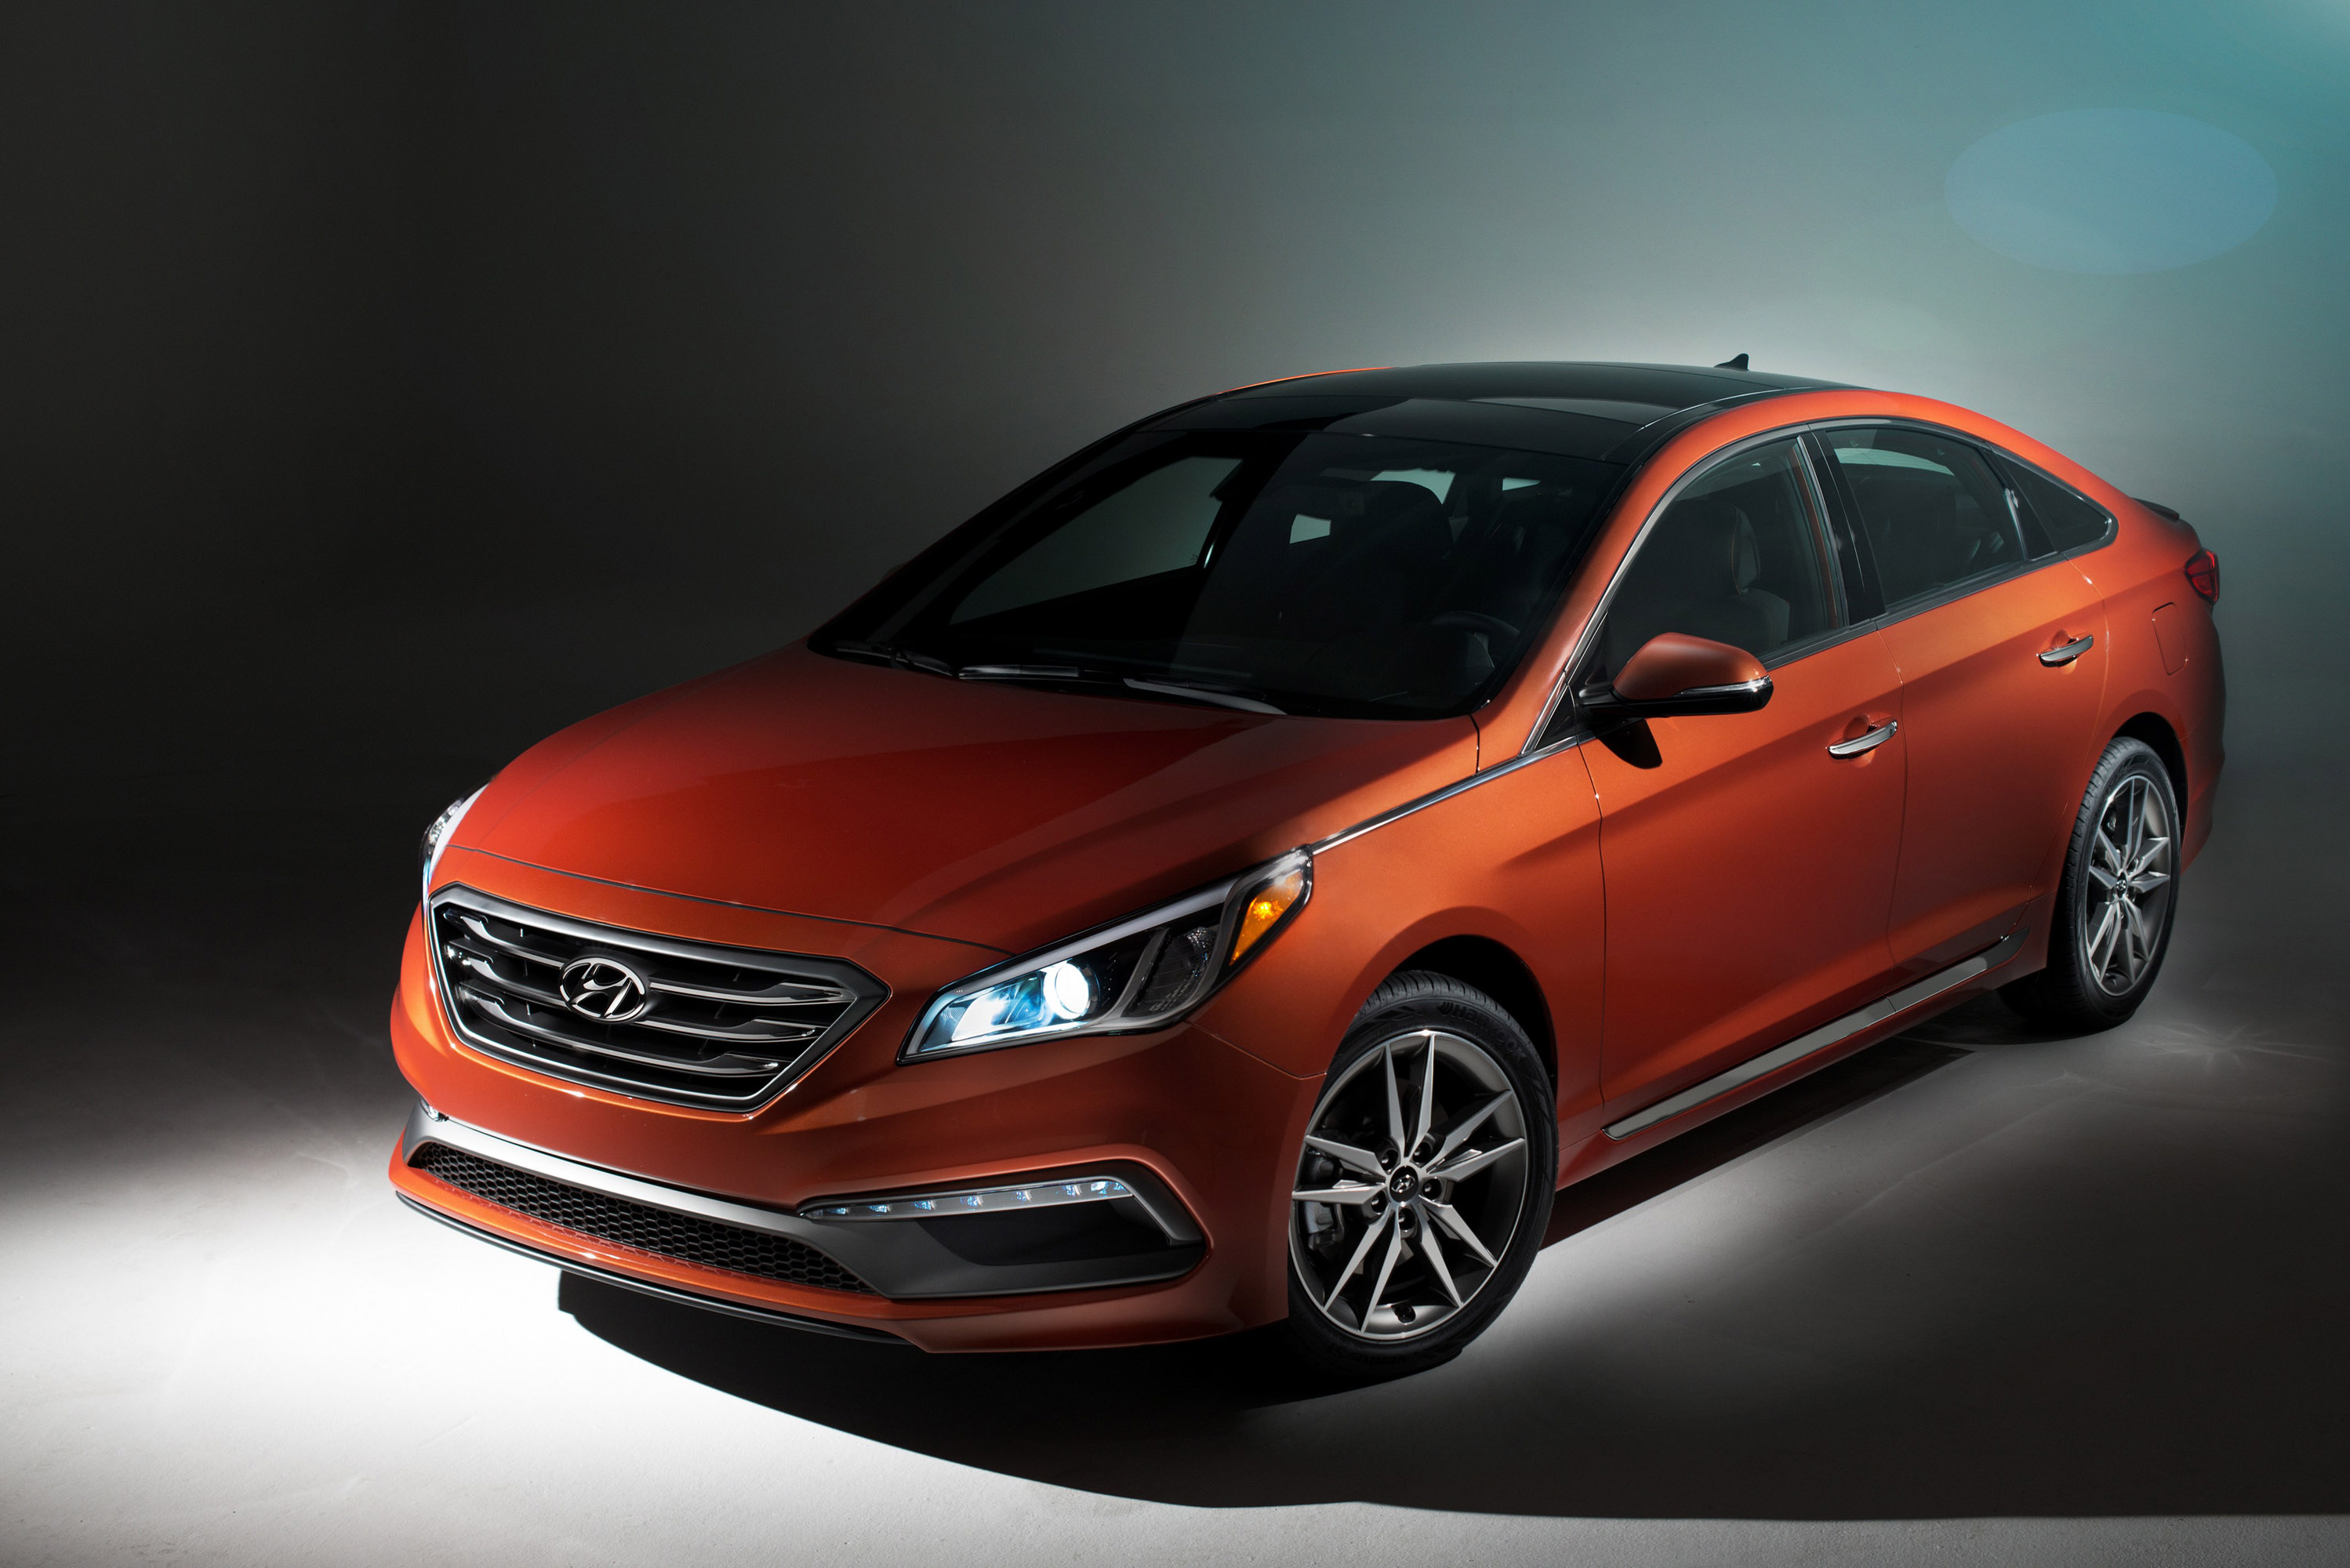 auto msrp hyundaiusa vehicles with hyundai android venetian features now sonata